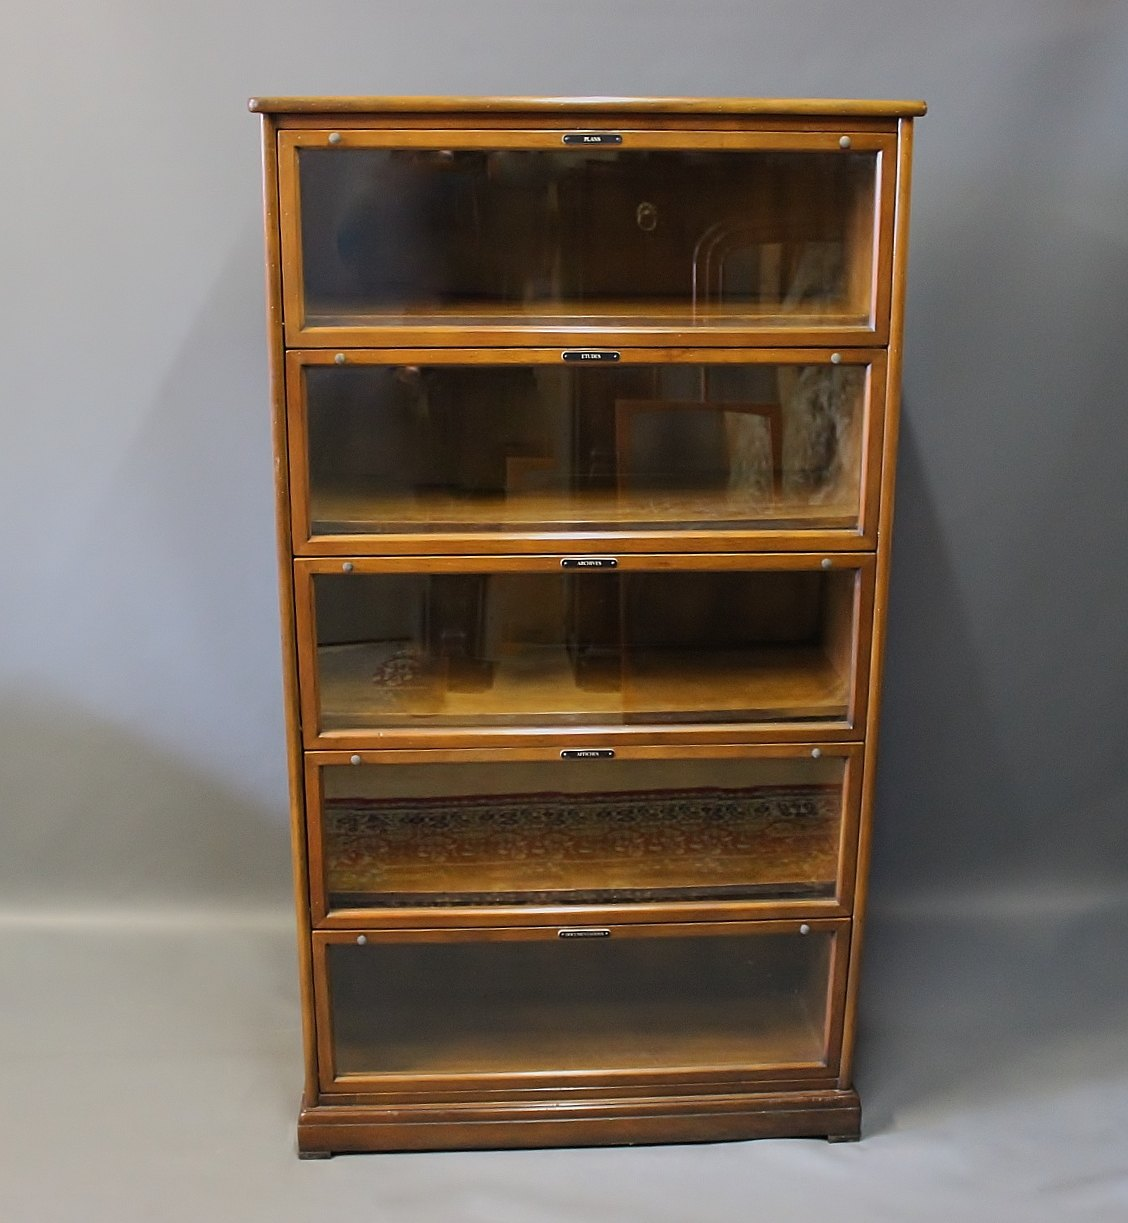 French Apothecary Cabinet In Mahogany From The 1960s. 5000m2 Showroom.